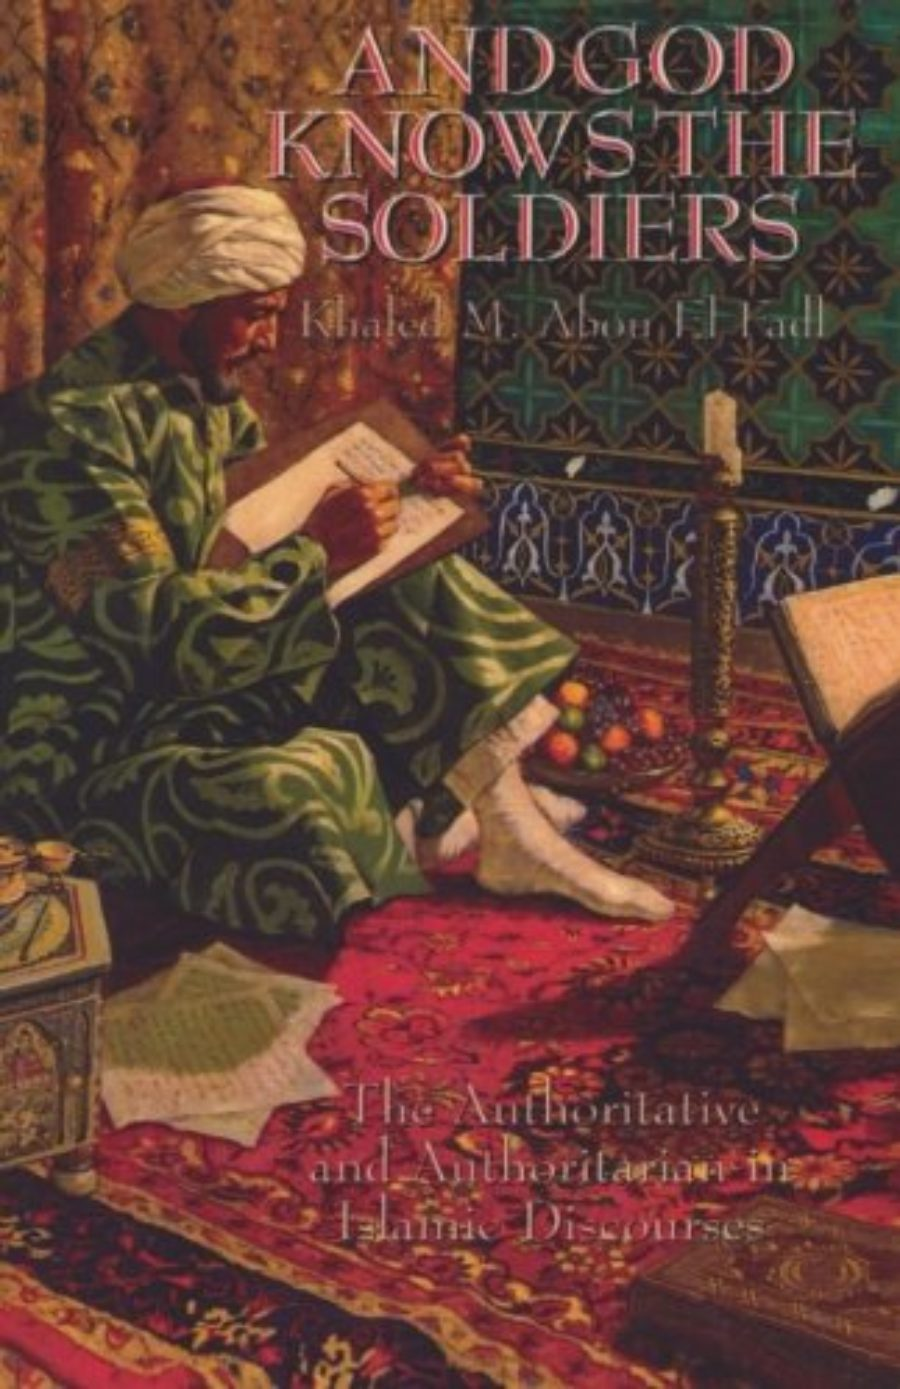 Cover of And God Knows the Soldiers: The Authoritative and Authoritarian in Islamic Discourses